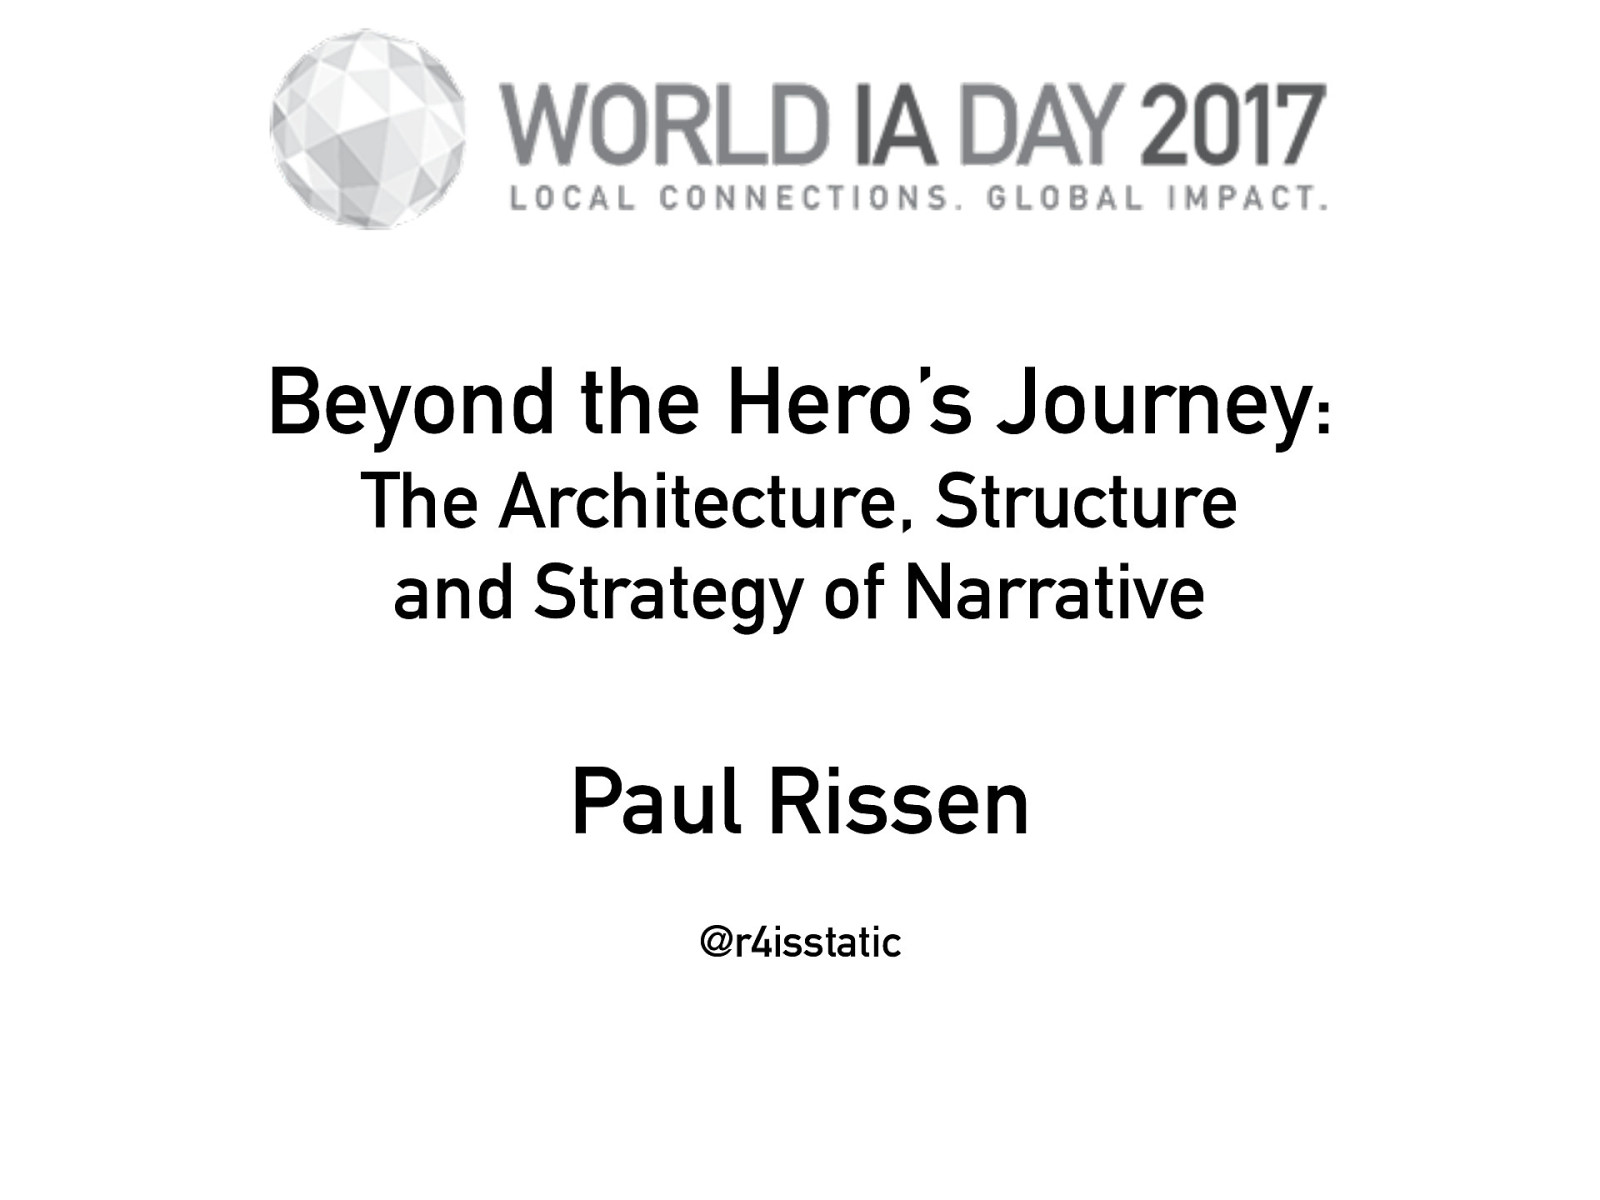 Beyond the Hero's Journey - The Architecture, Structure and Strategy of Narrative